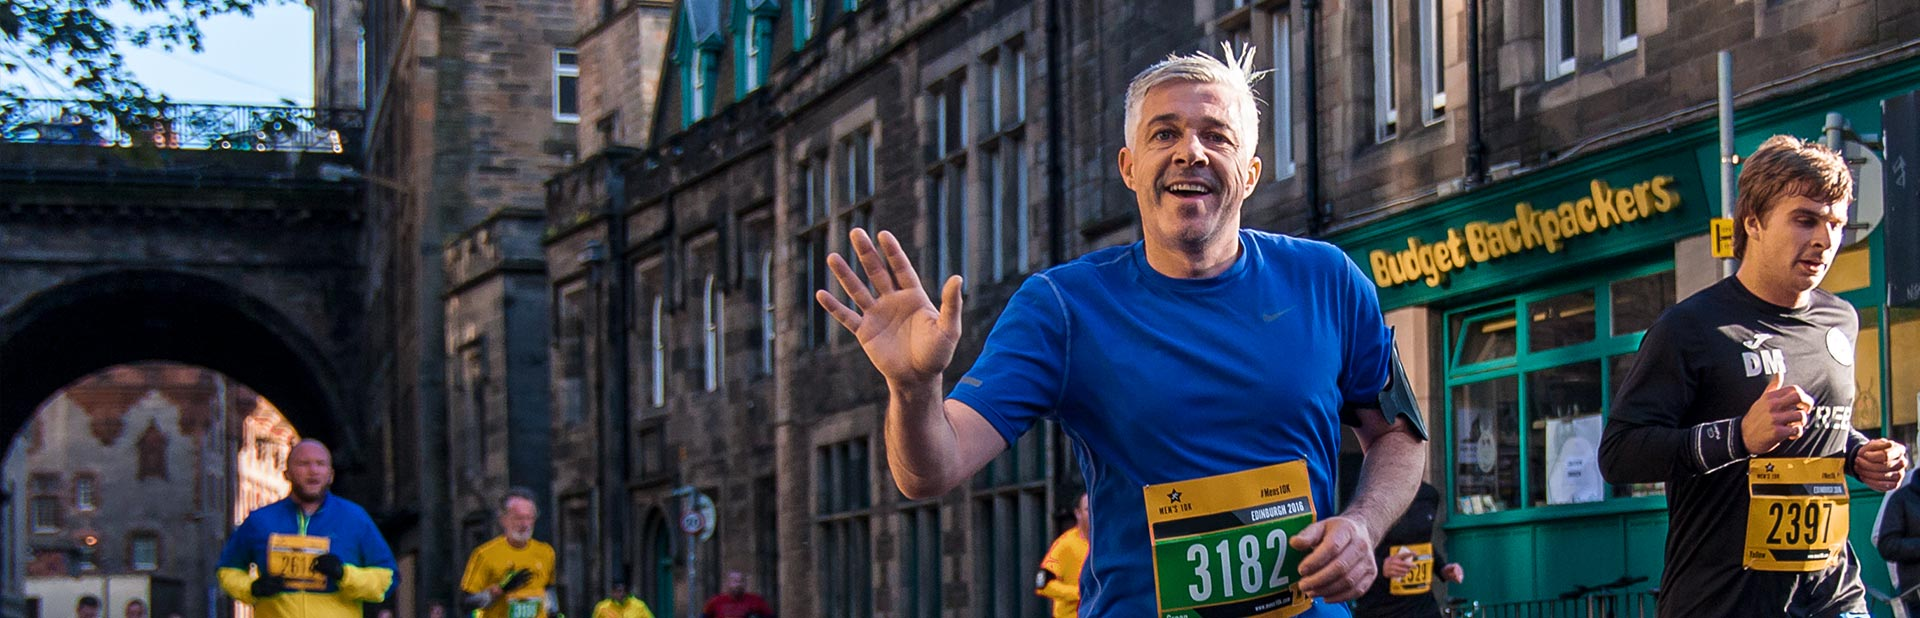 Mens10K_Website_Sliders_Edi_01